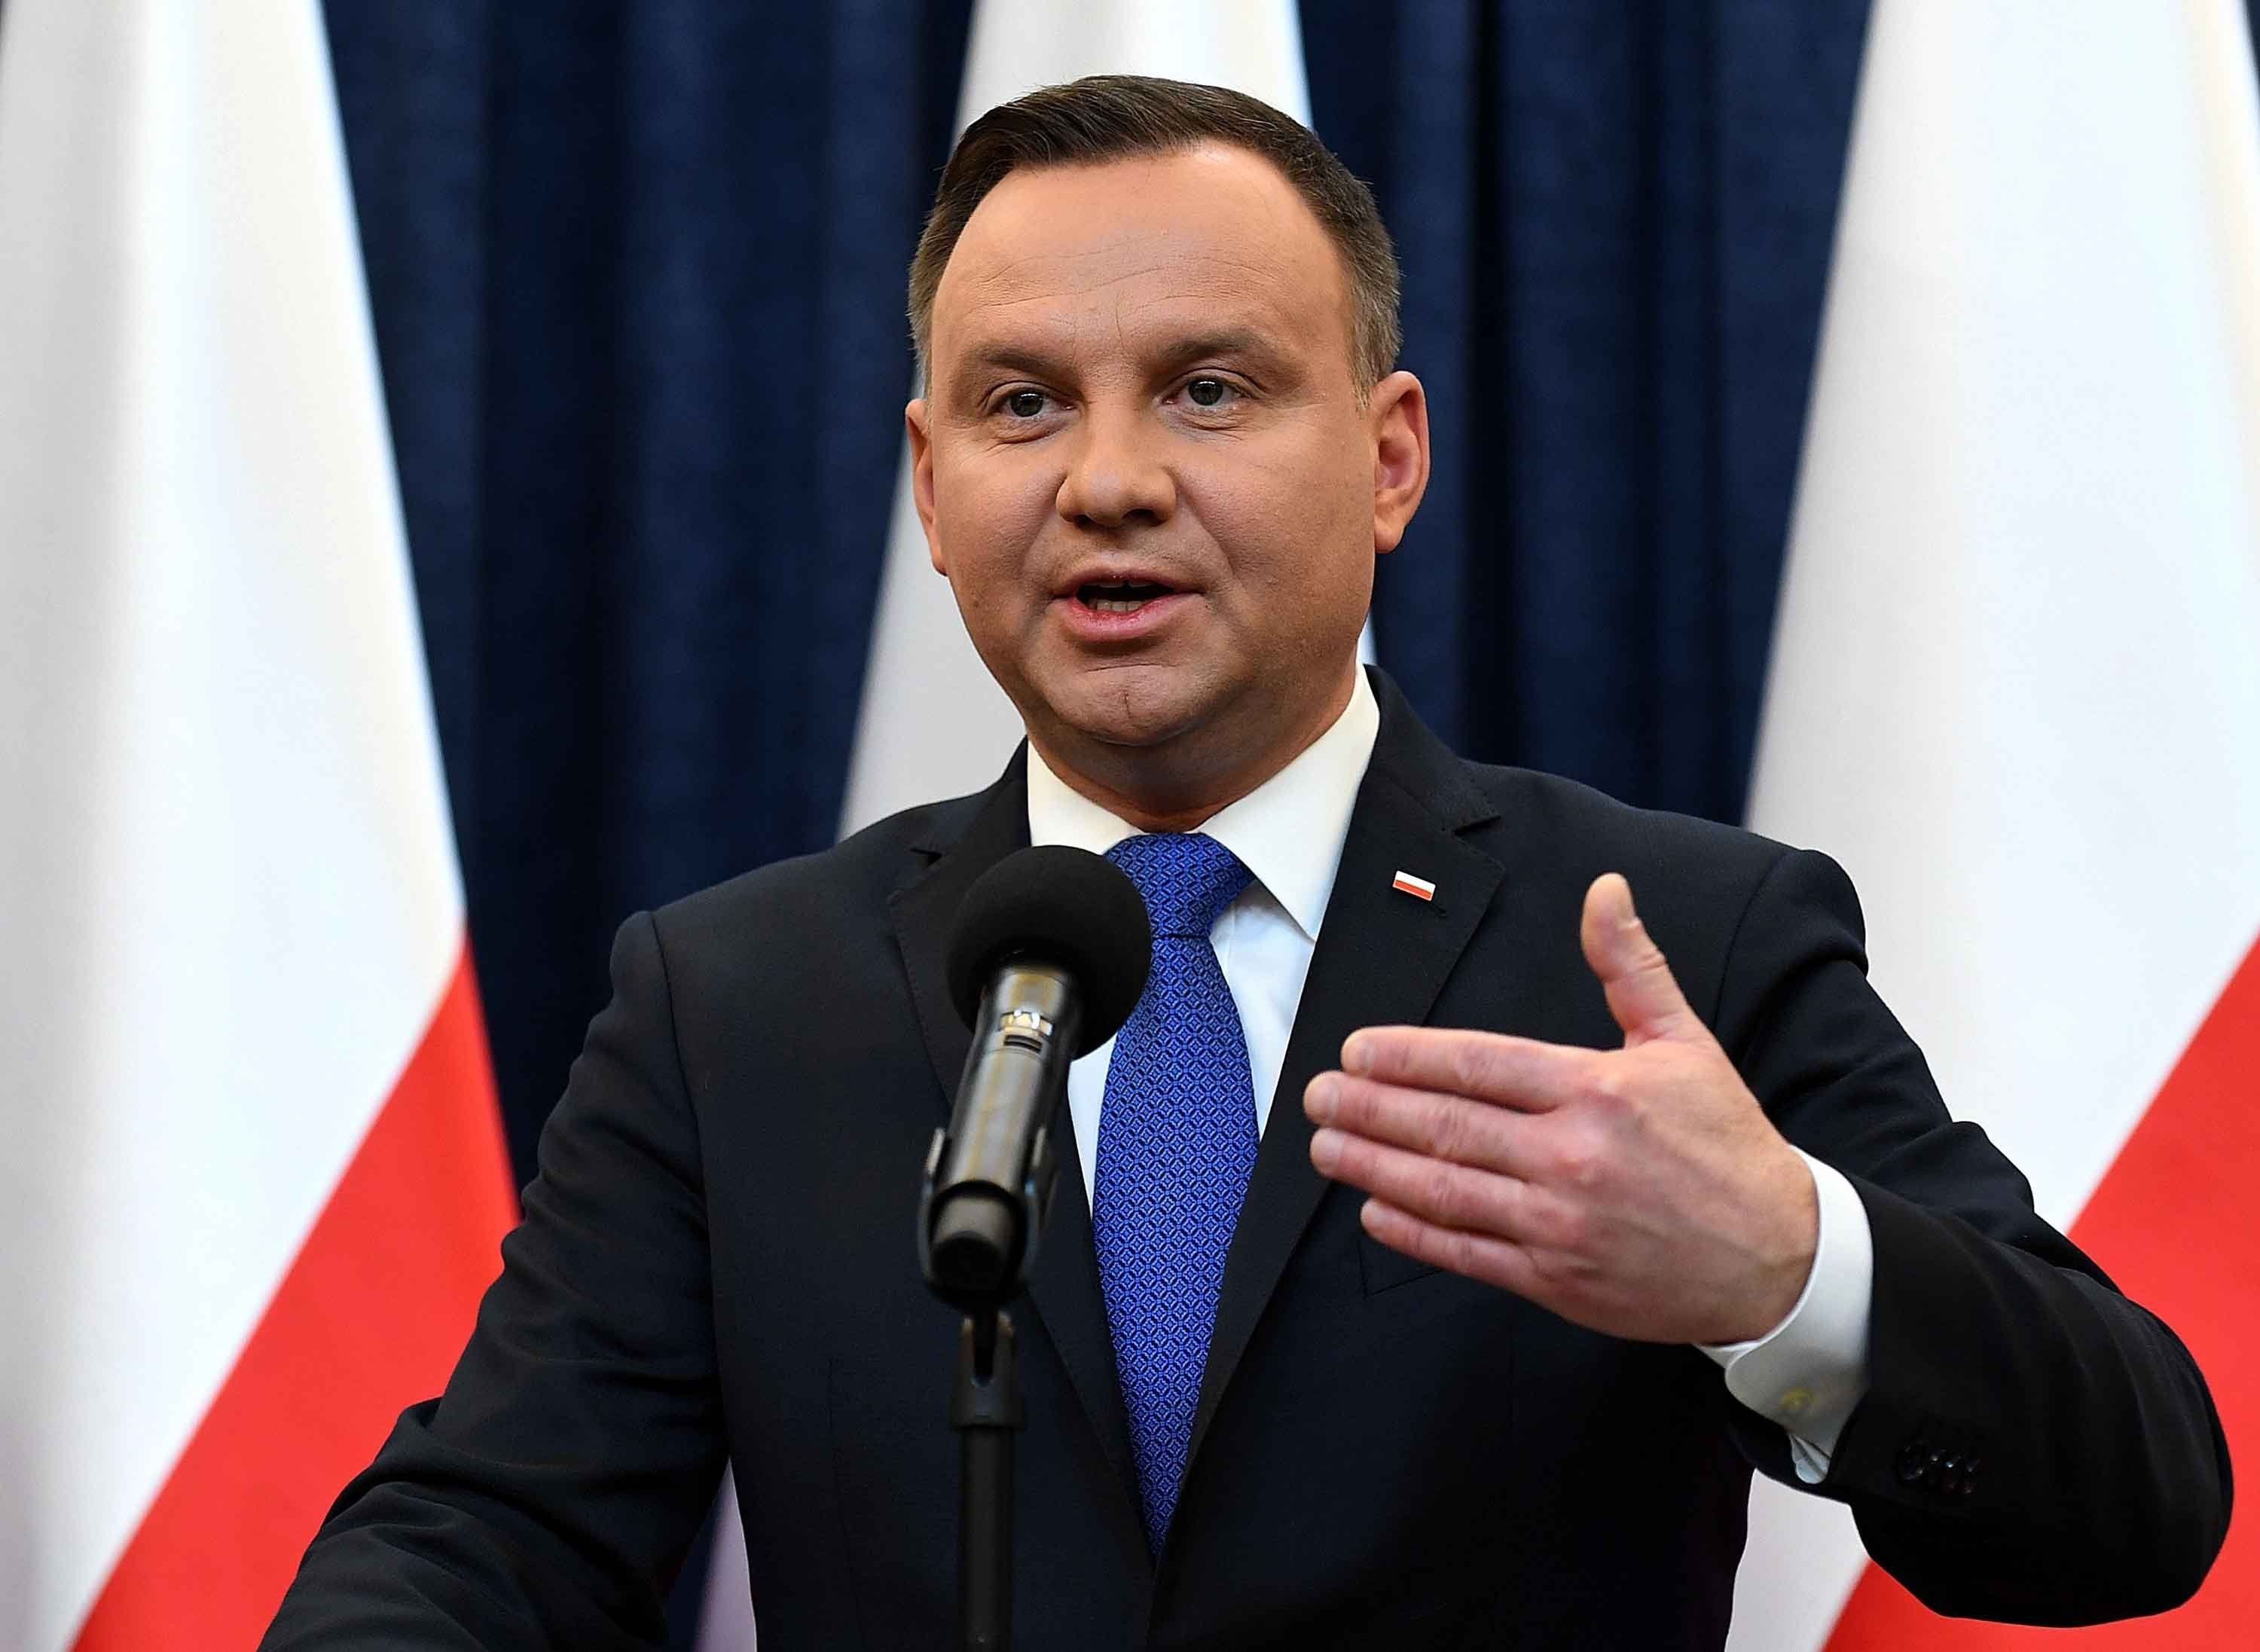 Full credit: Janek Skarzynski/AFP/Getty Images  Poland's President Andrzej Duda gives a press conference to announce that he will sign into law a controversial Holocaust bill.